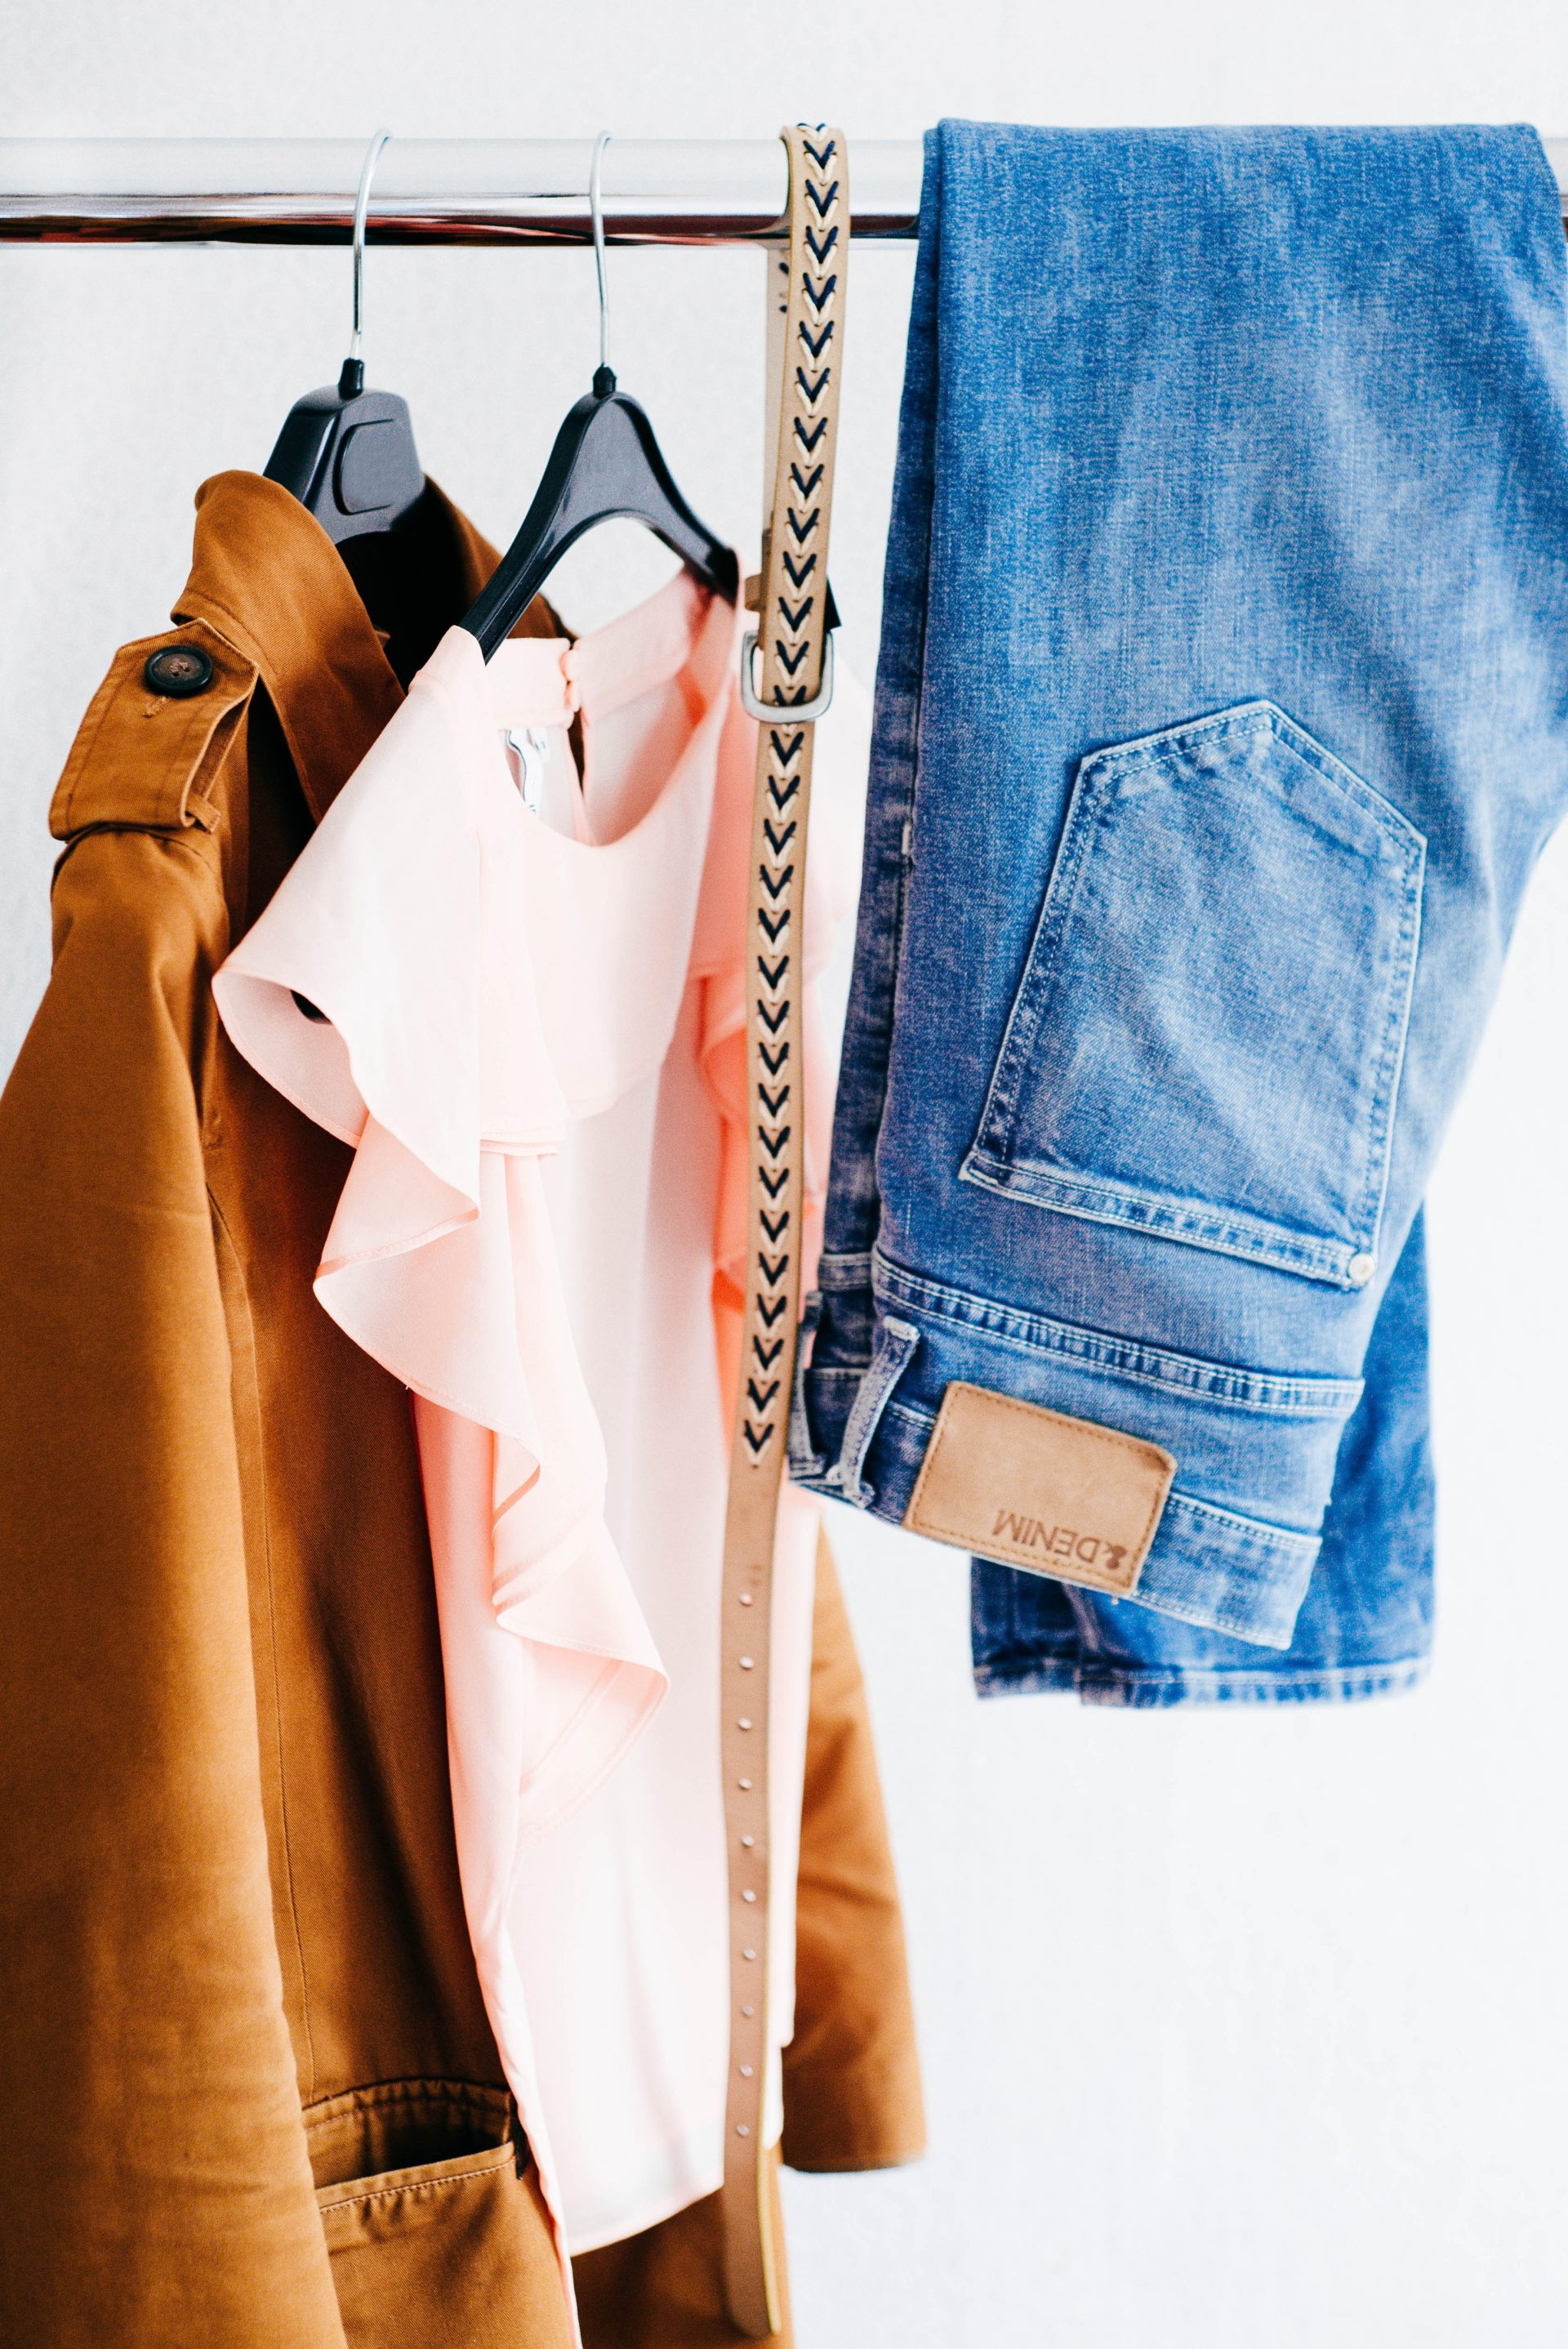 4 Tips to Updating your Wardrobe on a Budget